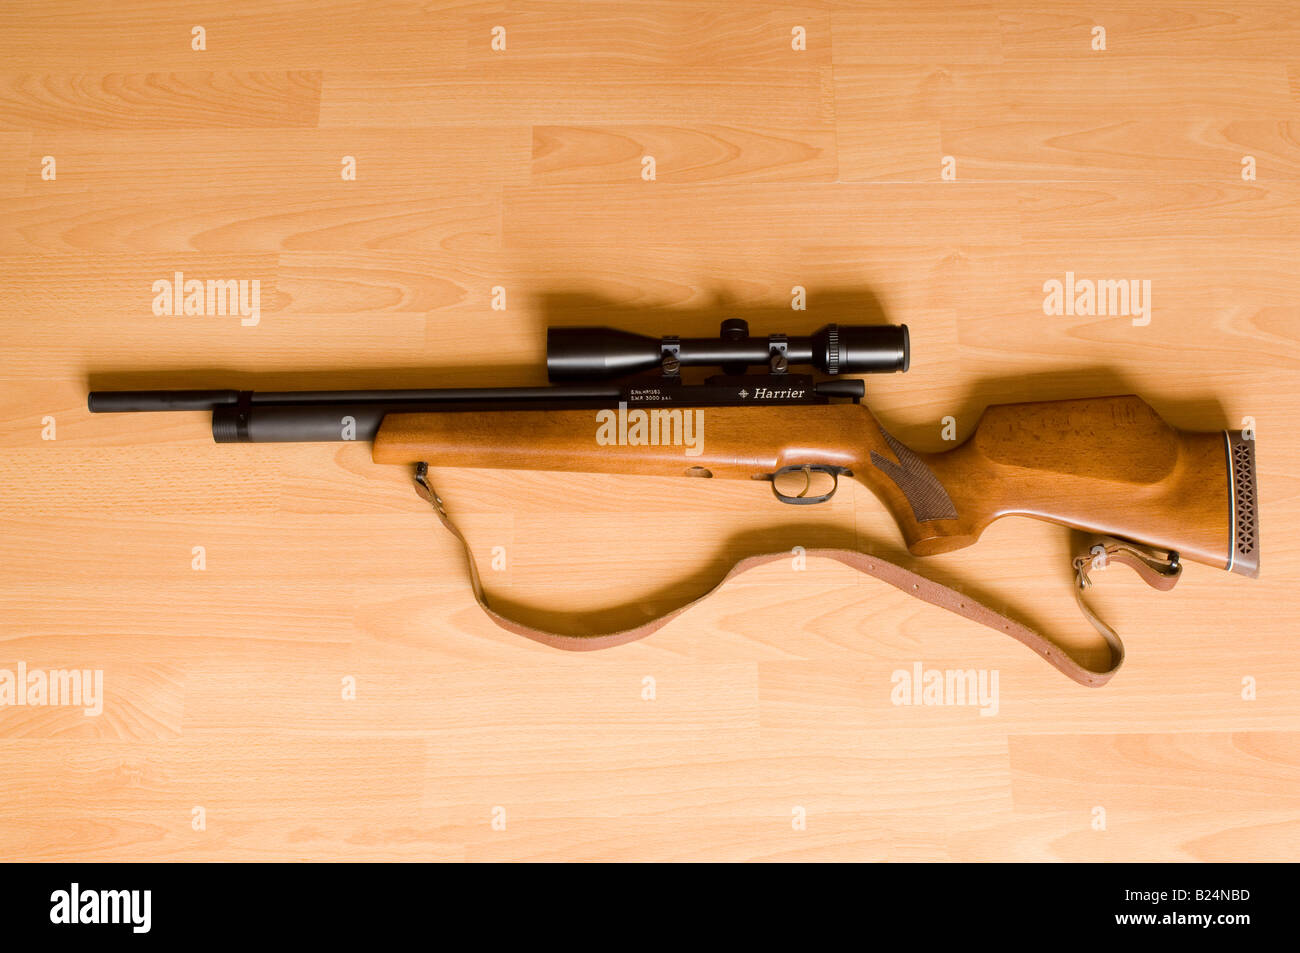 Daystate Harrier Pre-Charged Pneumatic Air Rifle & Telescopic Sight - Stock Image